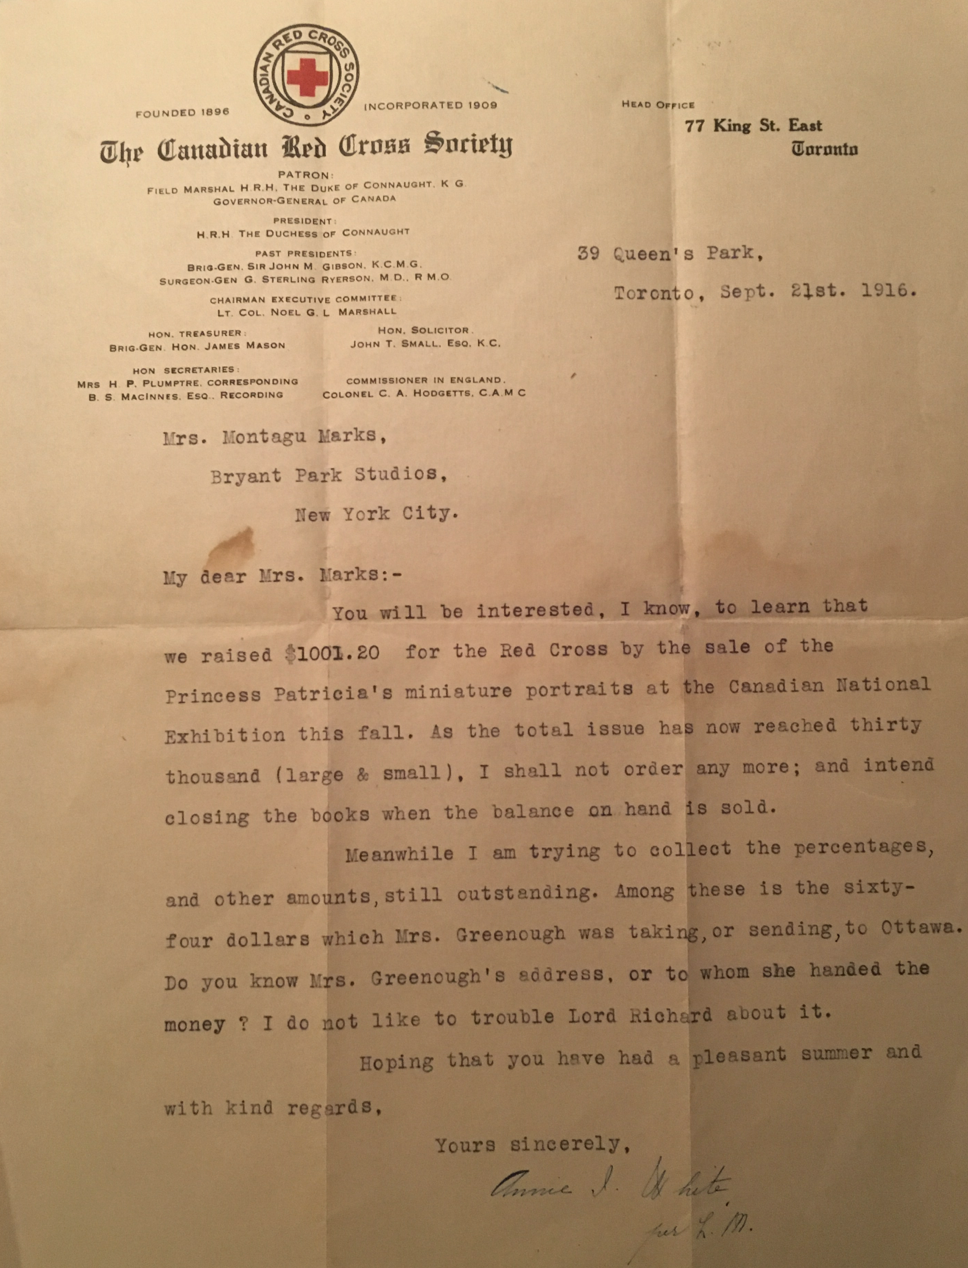 Letter from the Canadian Red Cross stating 30,000 copies of Stella Marks' miniature of Princess Patricia had been sold.